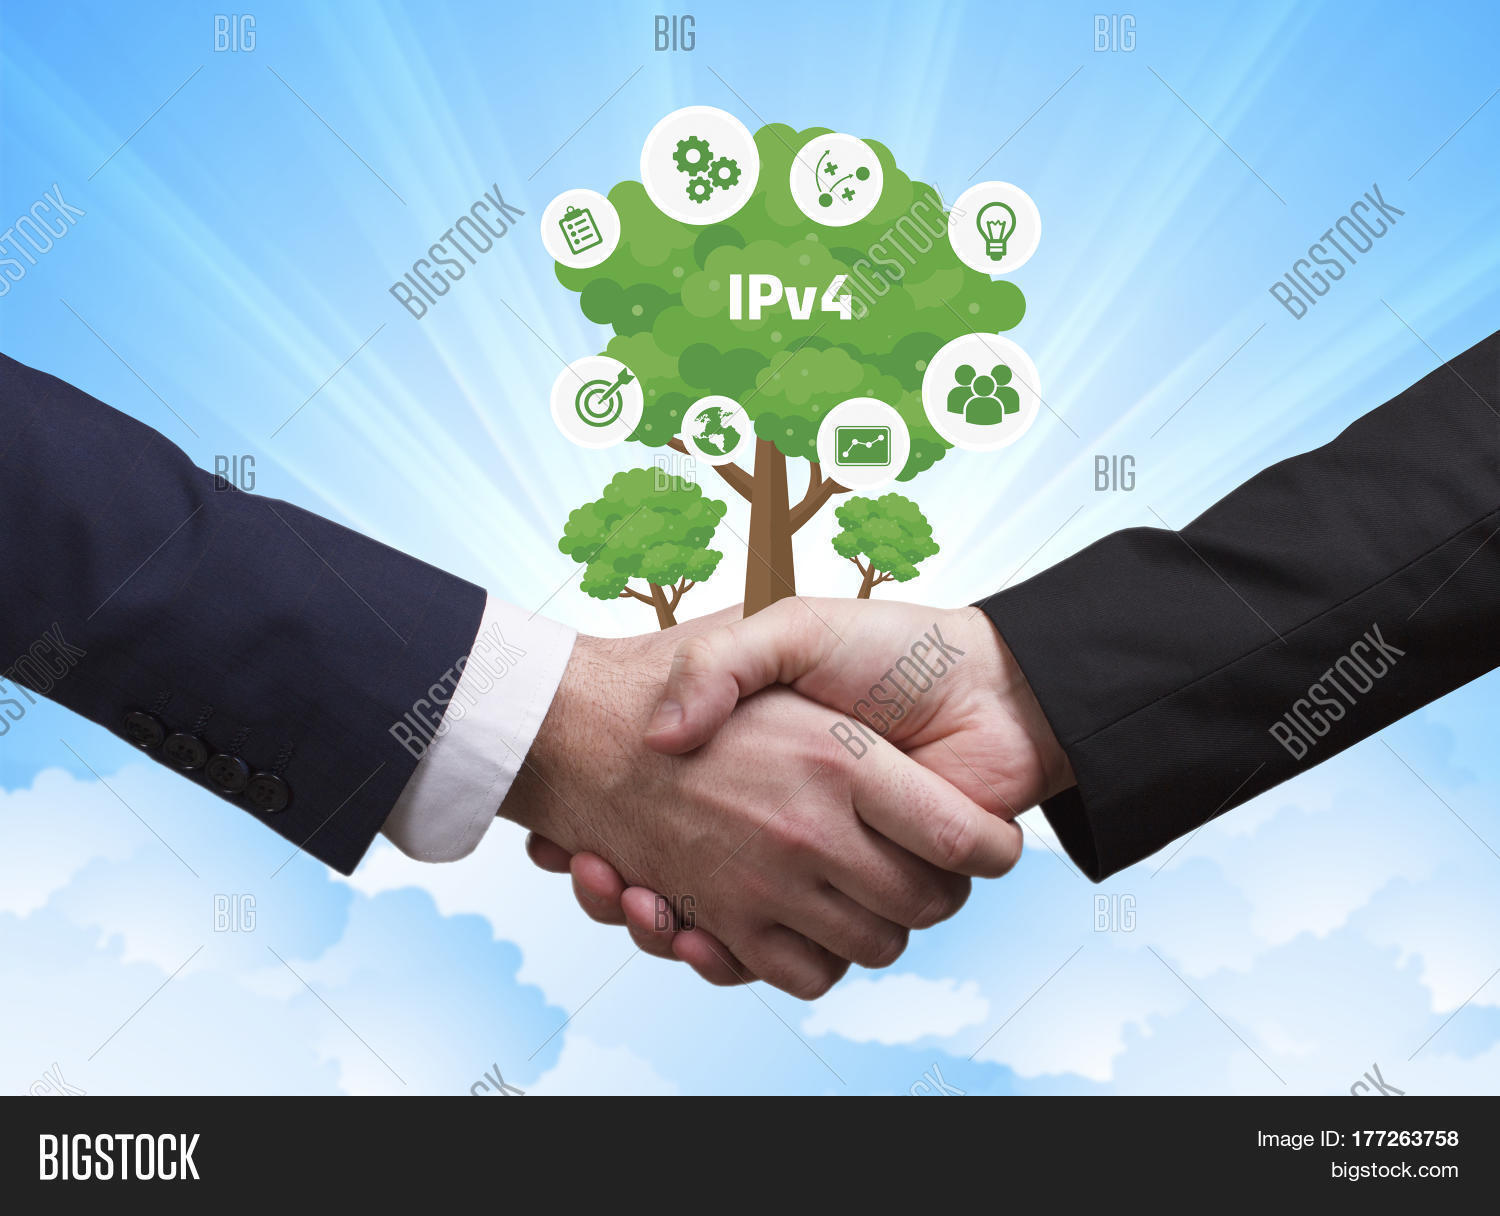 IPv4,accessibility,browsing,business,businessman,button,choosing,click,communication,computer,concept,connection,data,design,device,digital,display,future,gadget,hand,icon,information,innovation,interface,internet,iot,link,male,modern,navigation,network,networking,new,online,pointing,professional,push,screen,search,selecting,smart,software,tech,technology,virtual,web,website,wireless